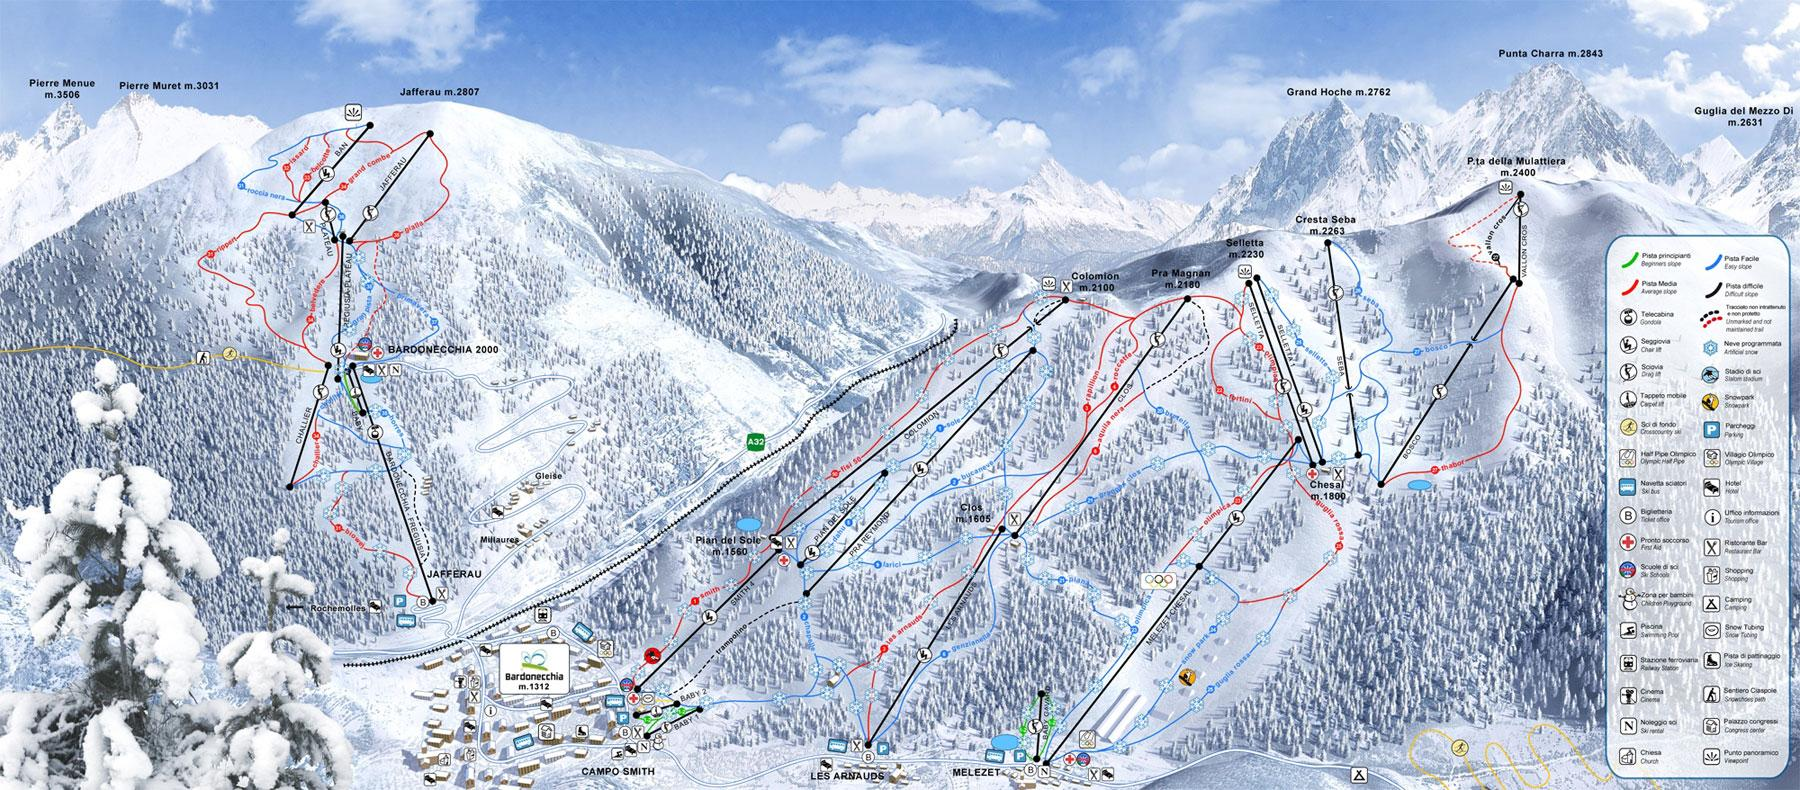 Piste Maps for Italian Ski Resorts J2Ski